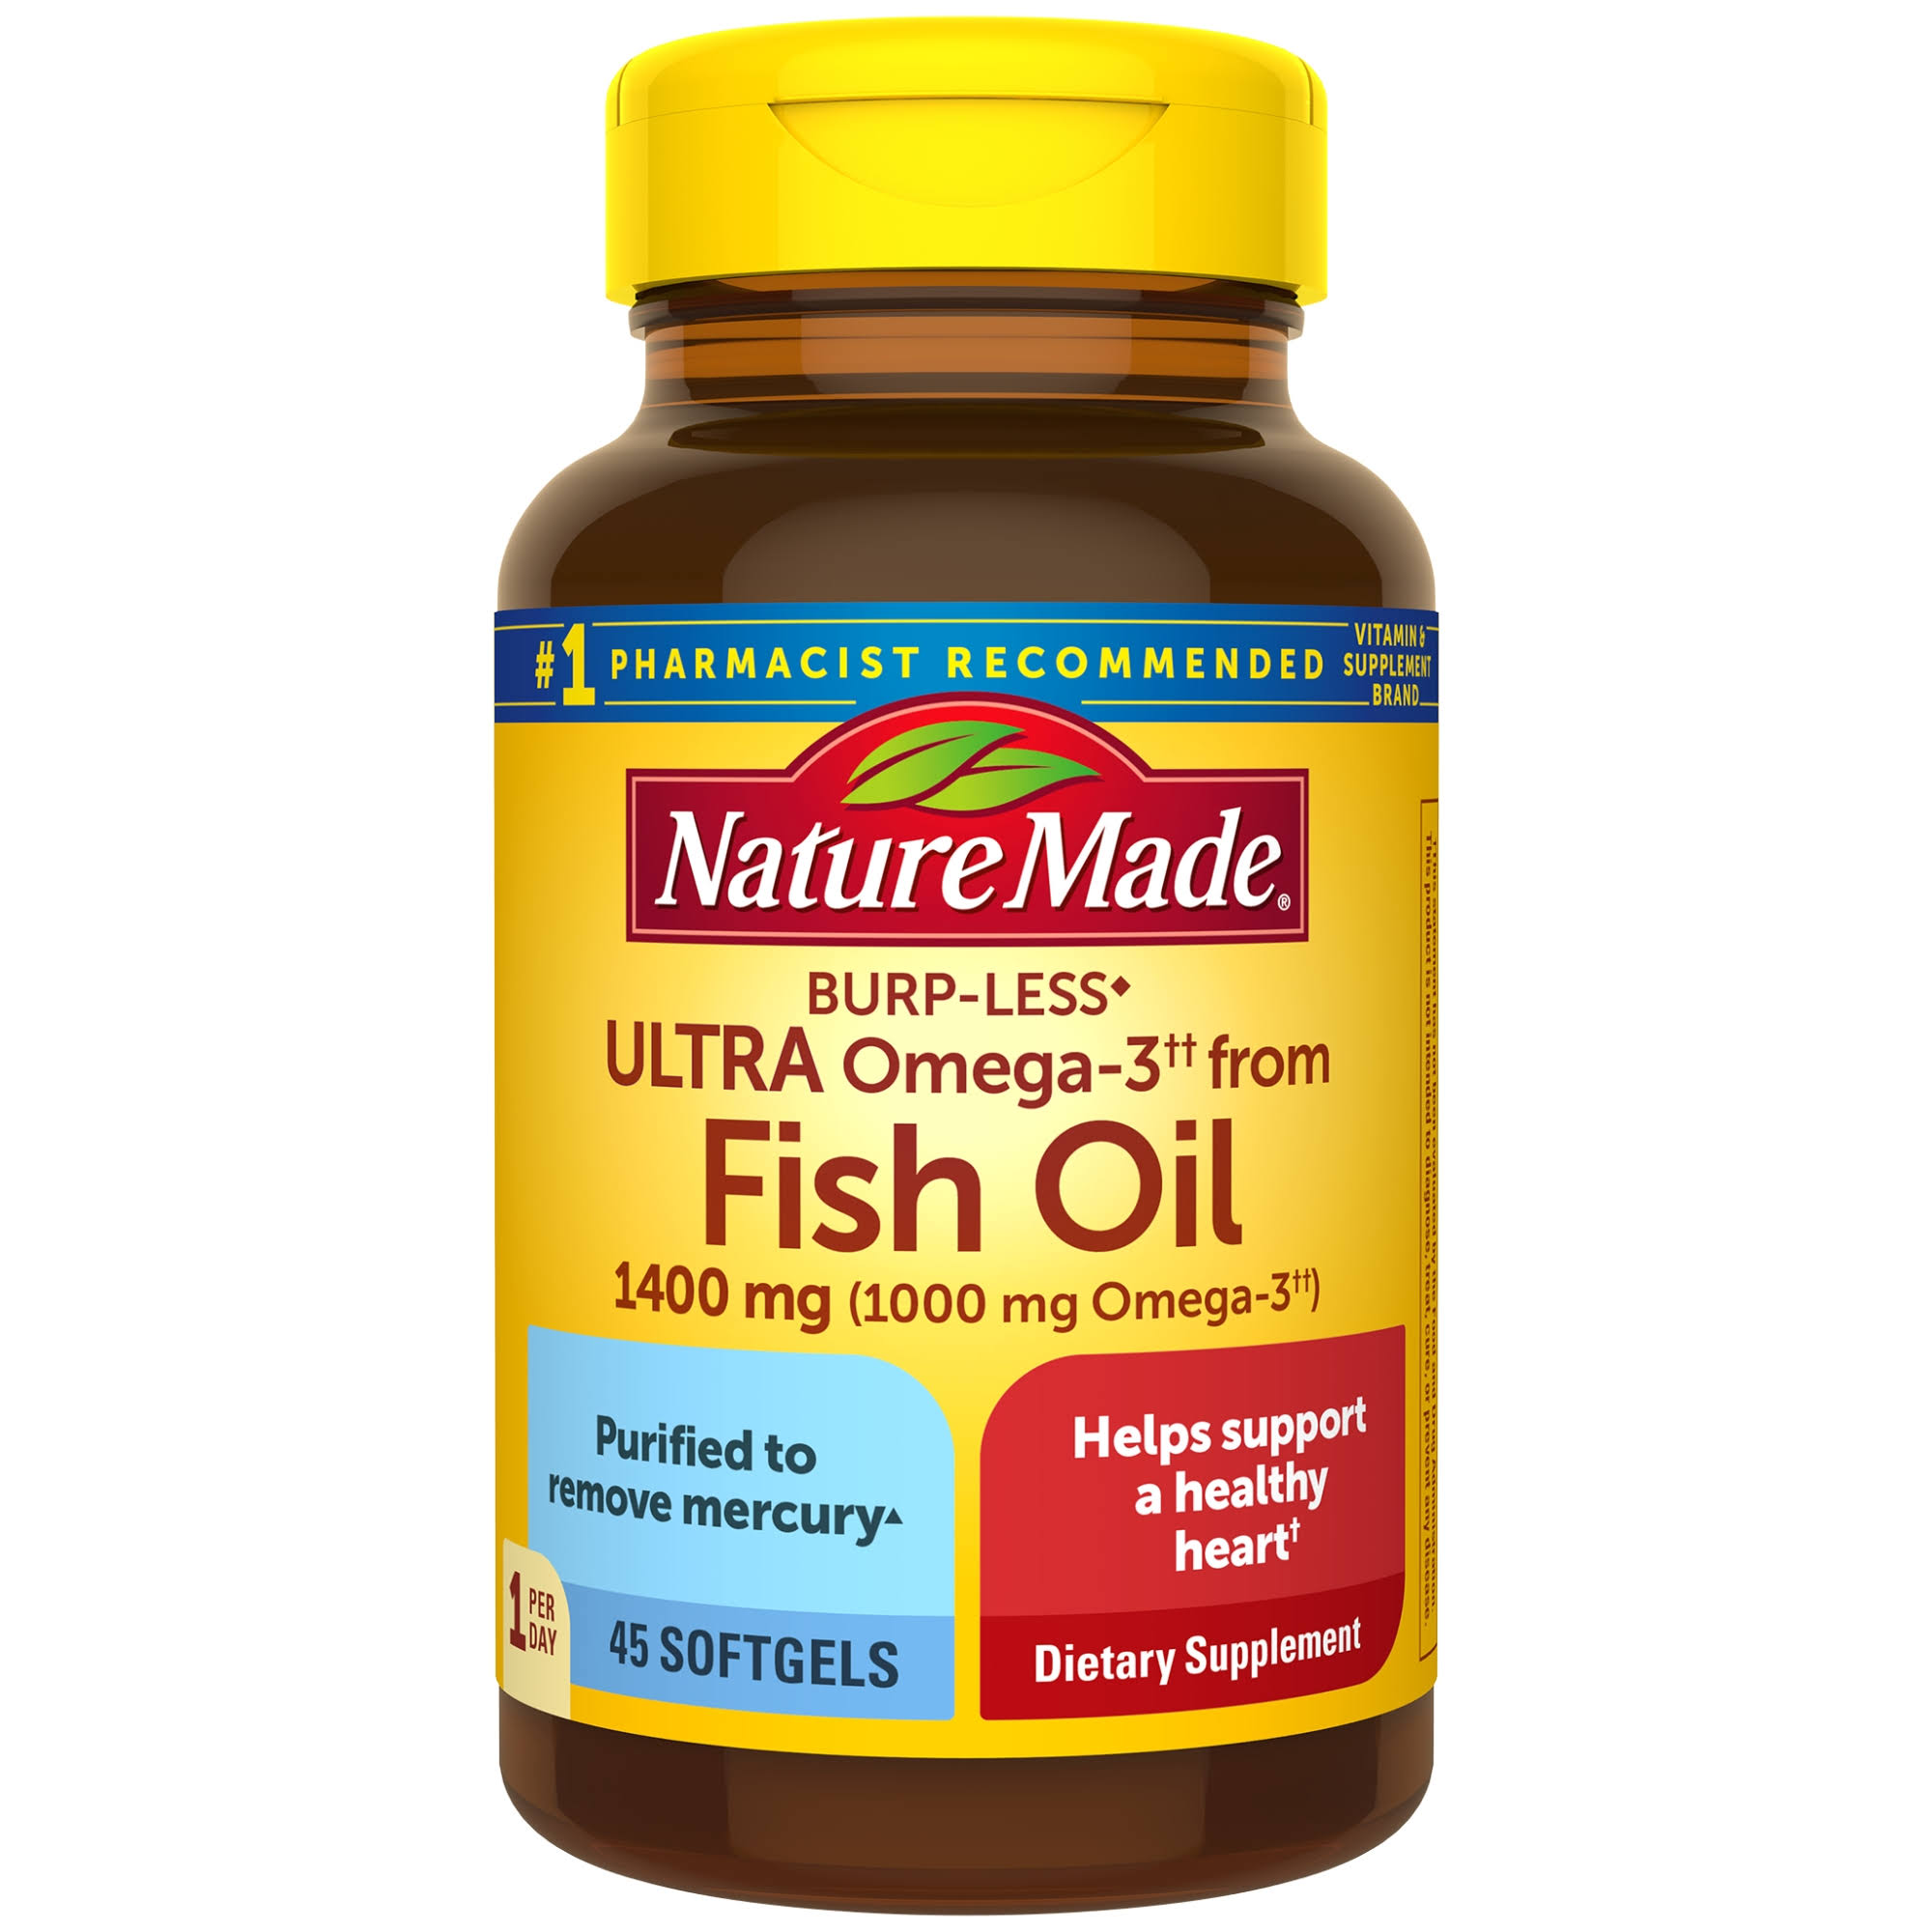 Nature Made Ultra Omega 3 Fish Oil Softgels - 1400mg, 45ct